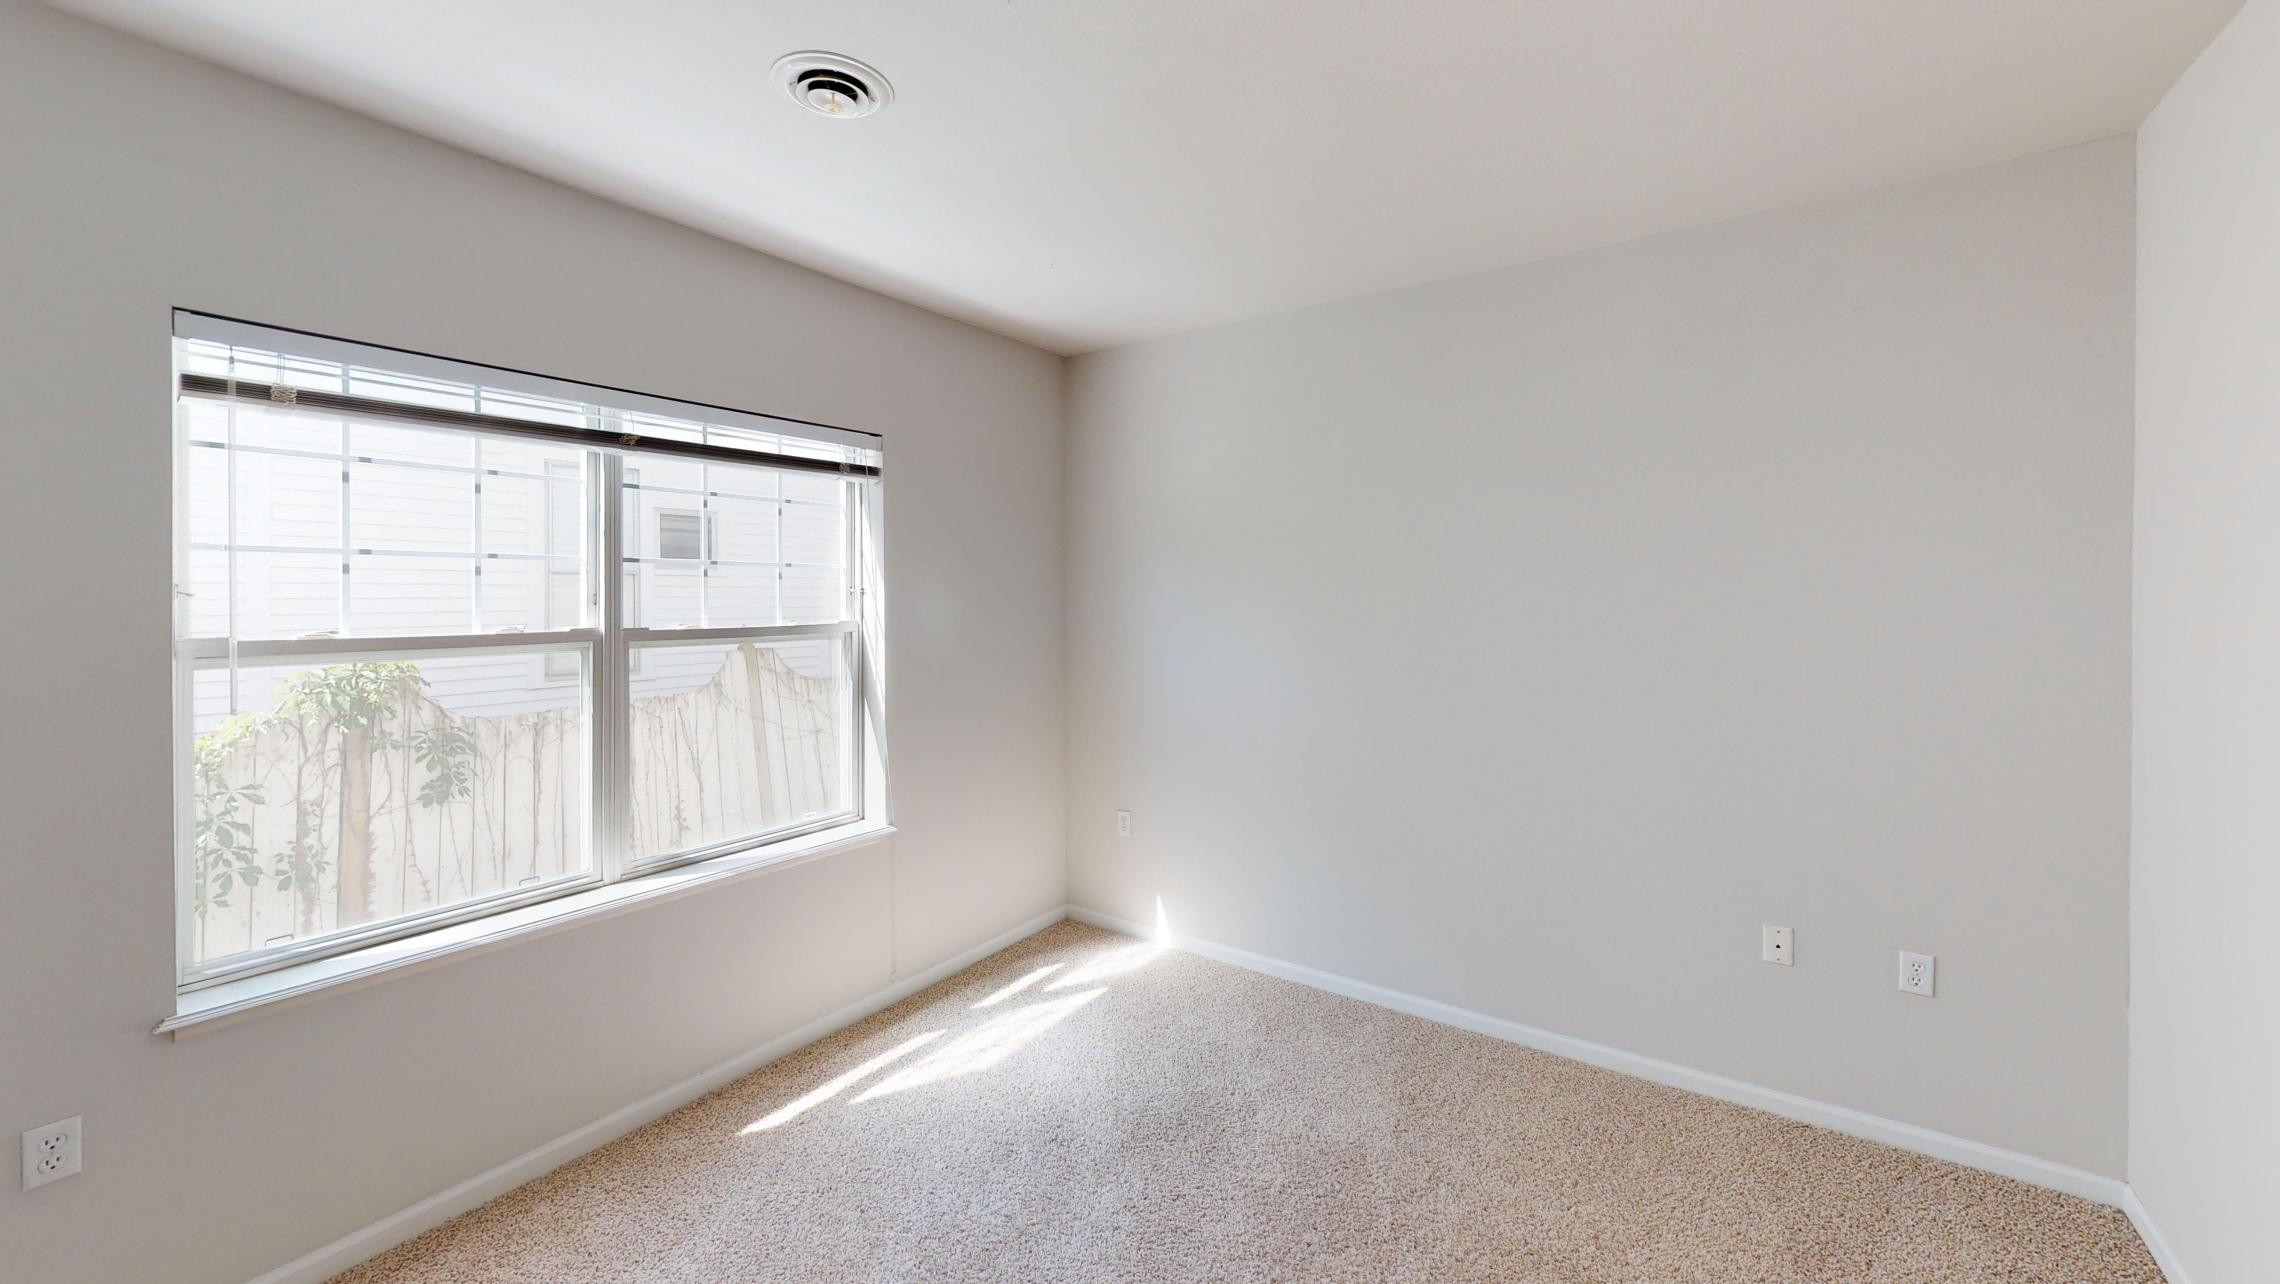 Wilson-Bay-Apartment-112-Two-Bedroom-Downtown-Madison-Guest-Room-Balcony-Corner.jpg